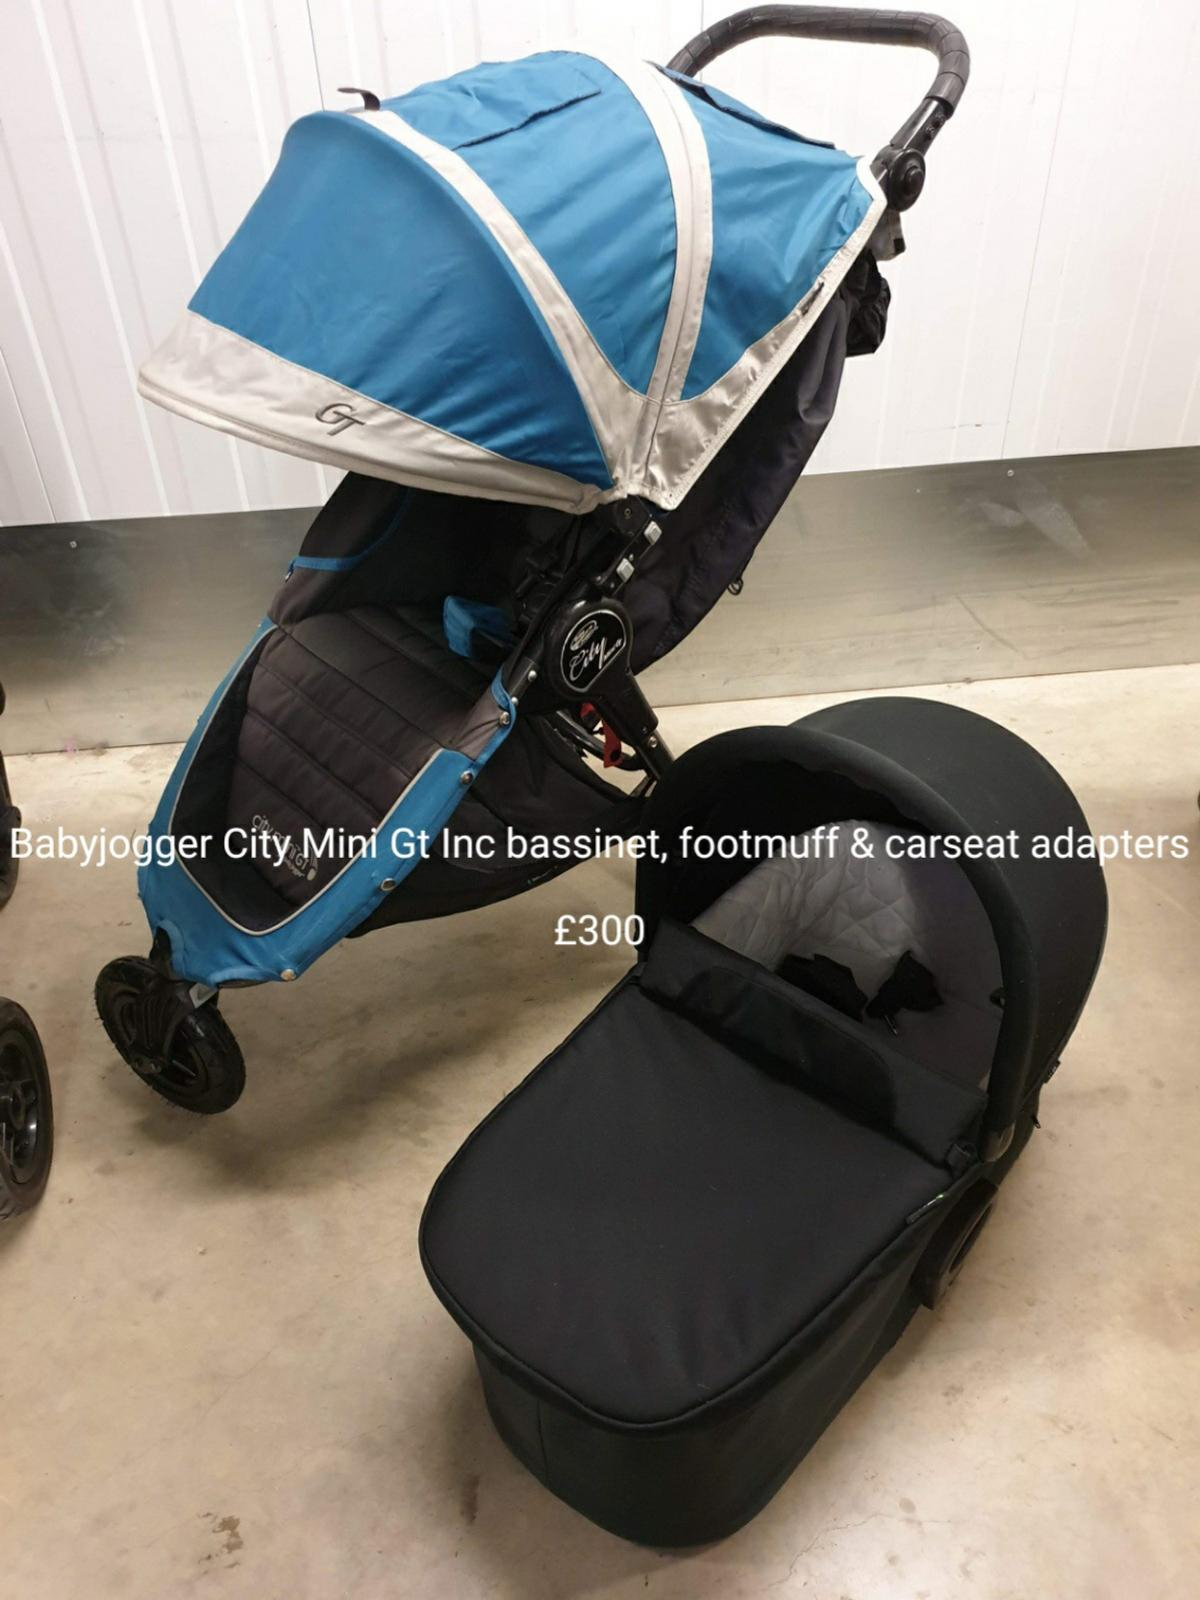 Babyjogger City Mini Gt System Baby Jogger In Sw19 Merton For